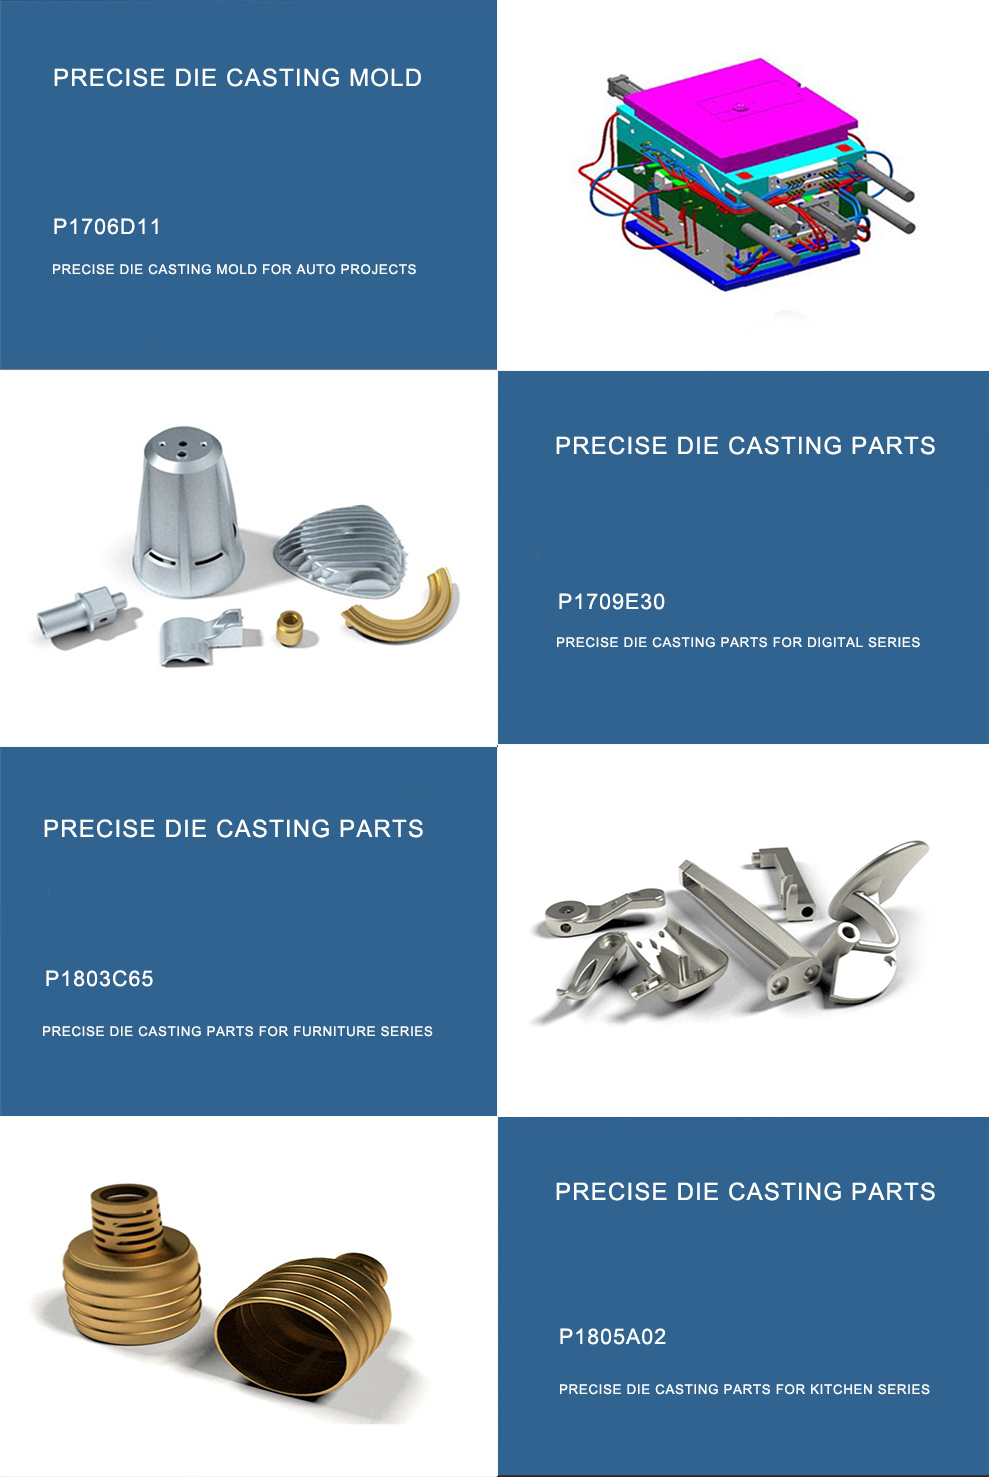 High precision metal mold